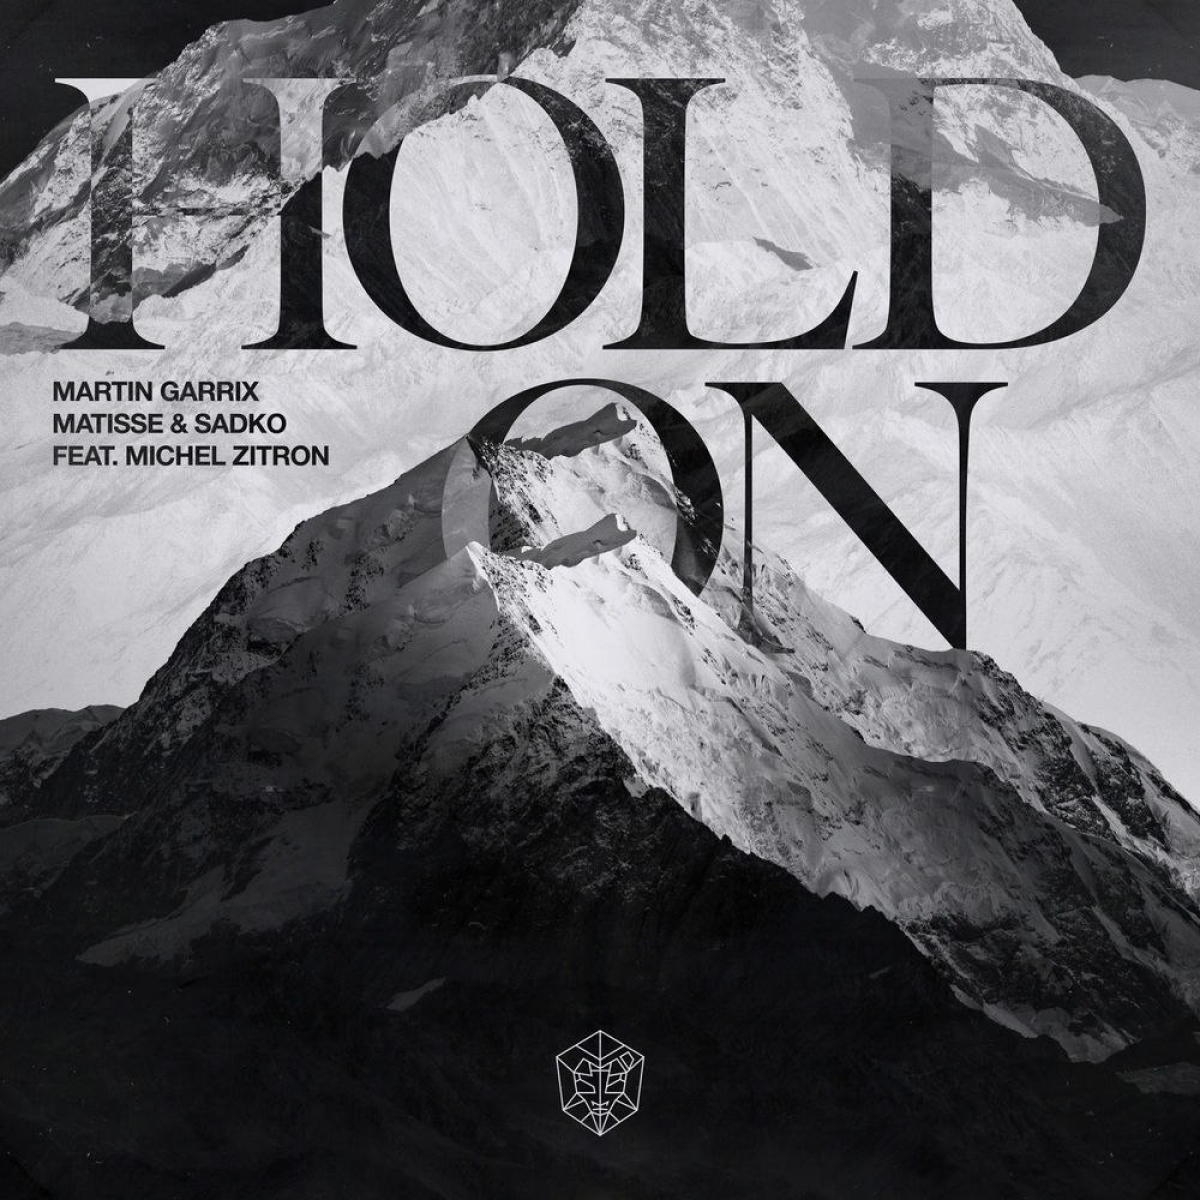 MARTIN GARRIX - Hold On